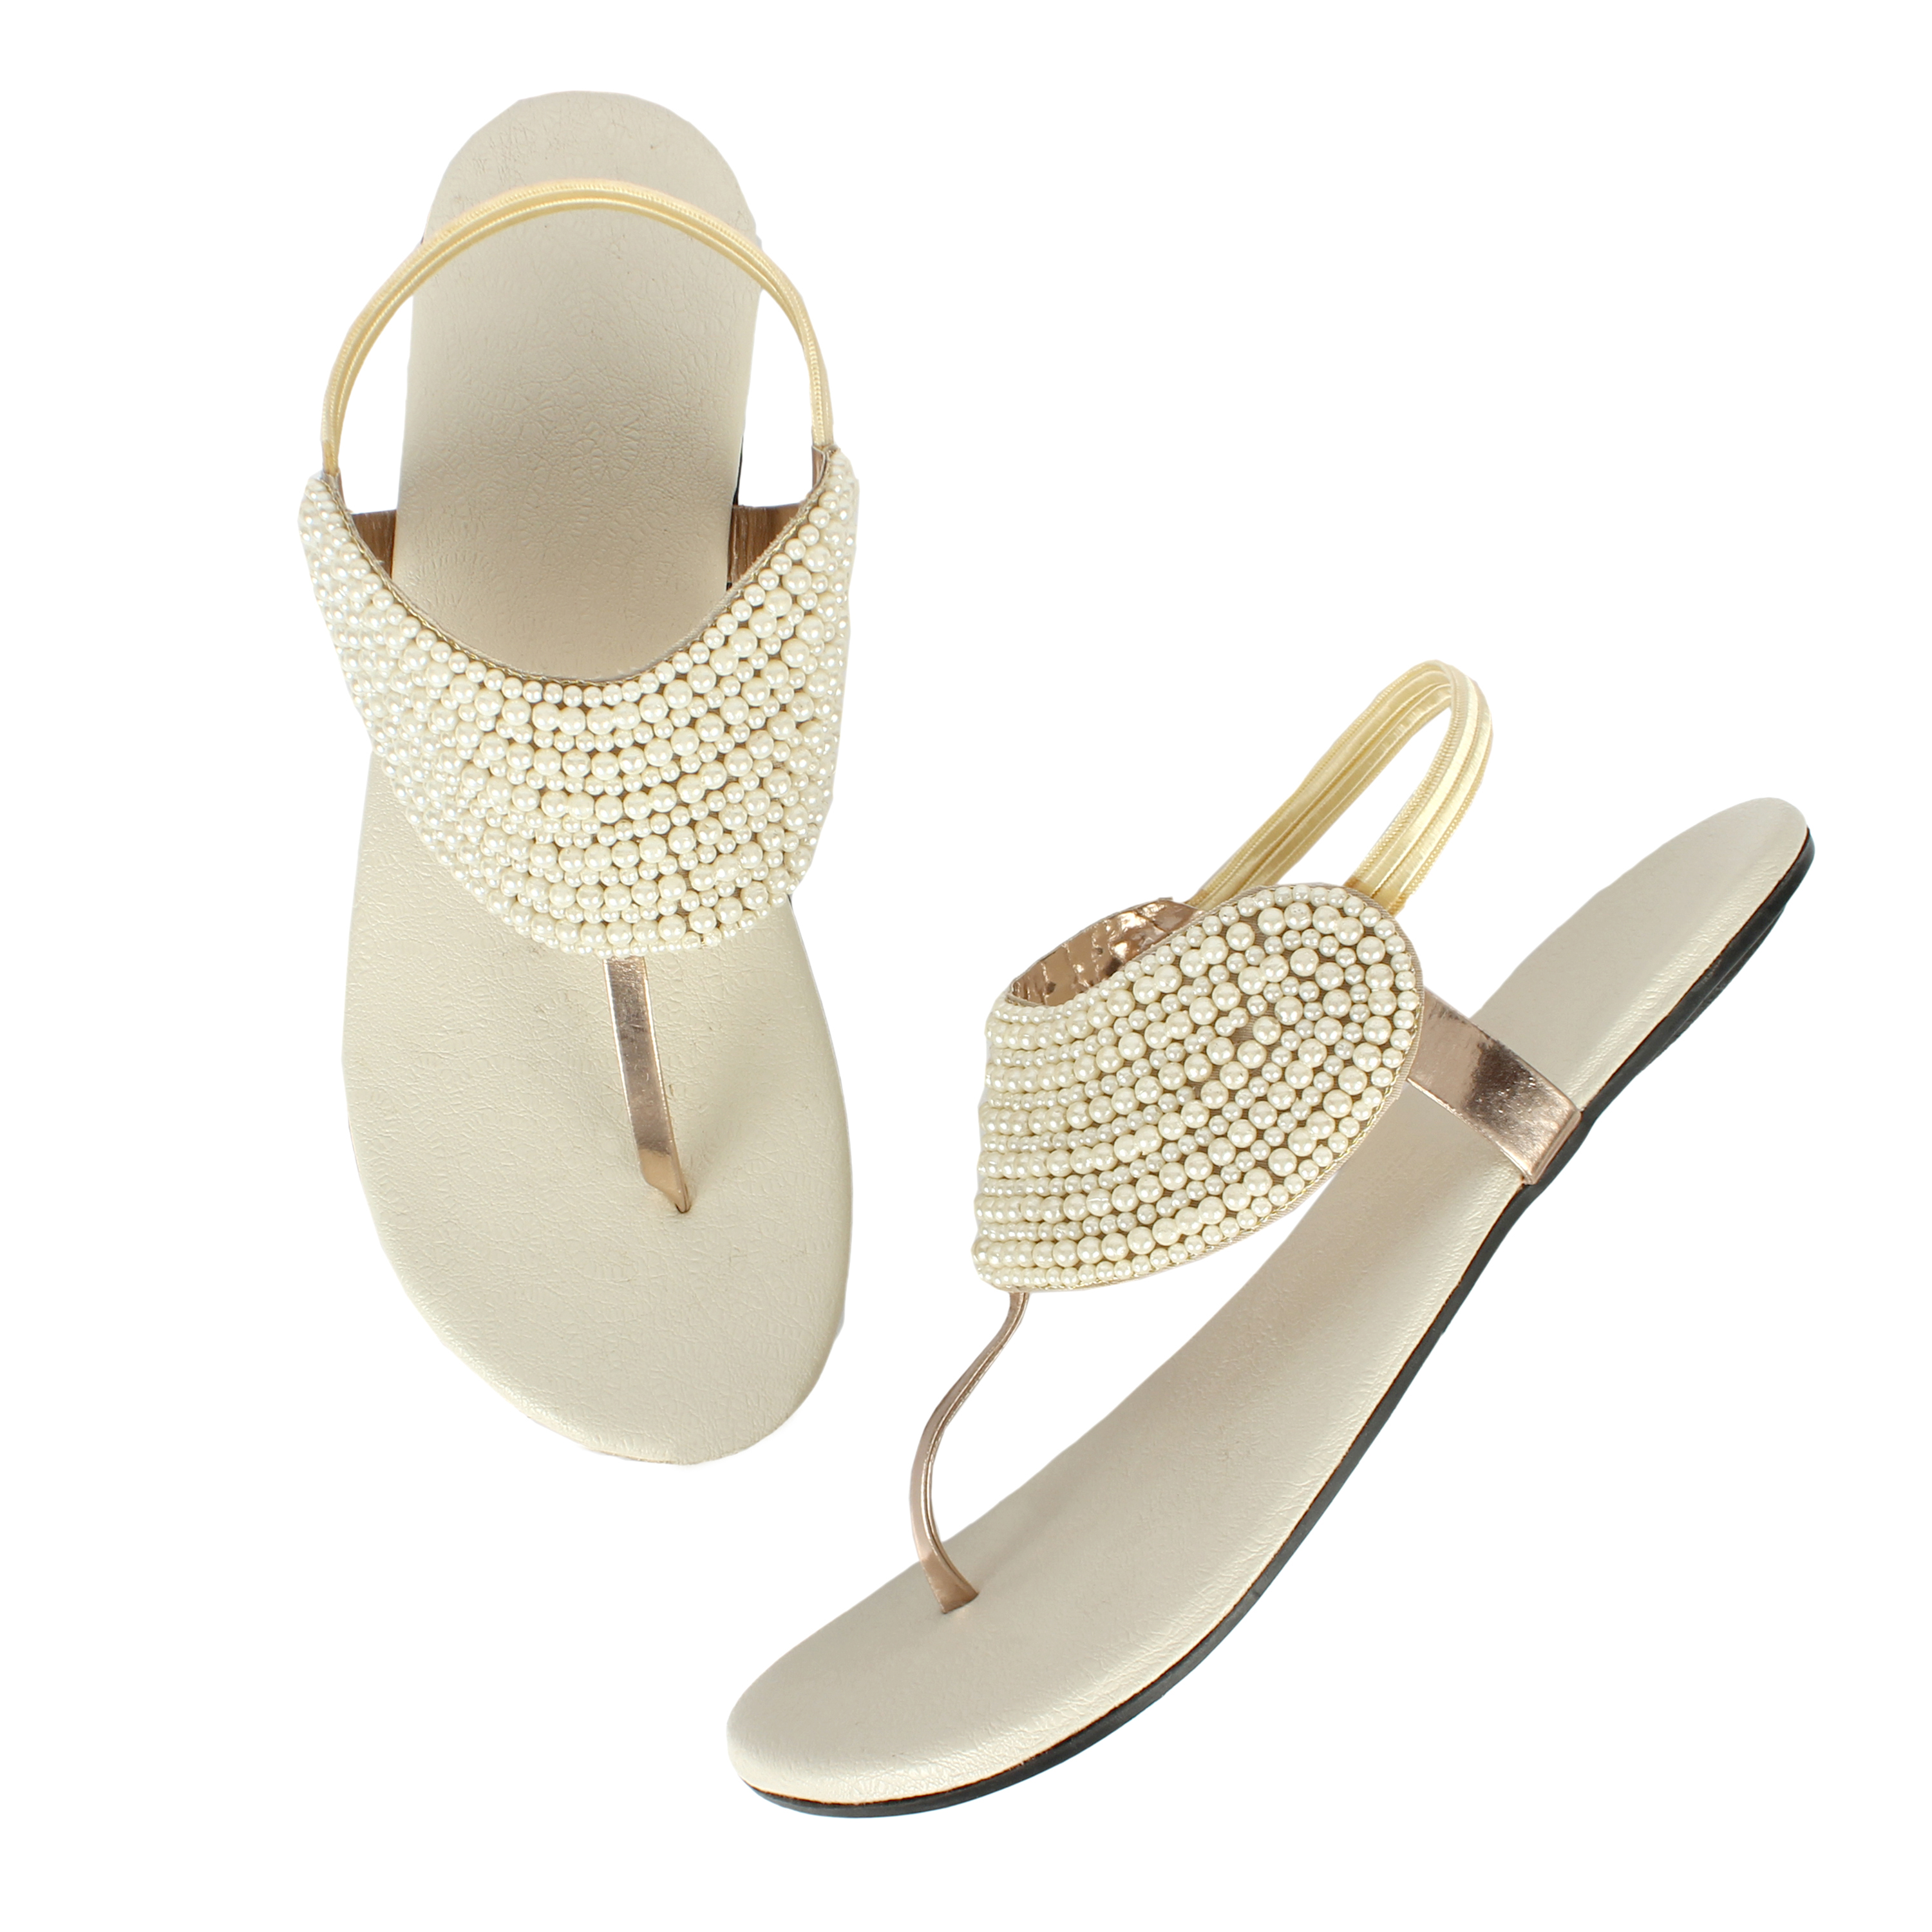 HACER'S EMBELLISHED WOMEN'S FLATS (White, 4-8( Women`s), PAIR'S)